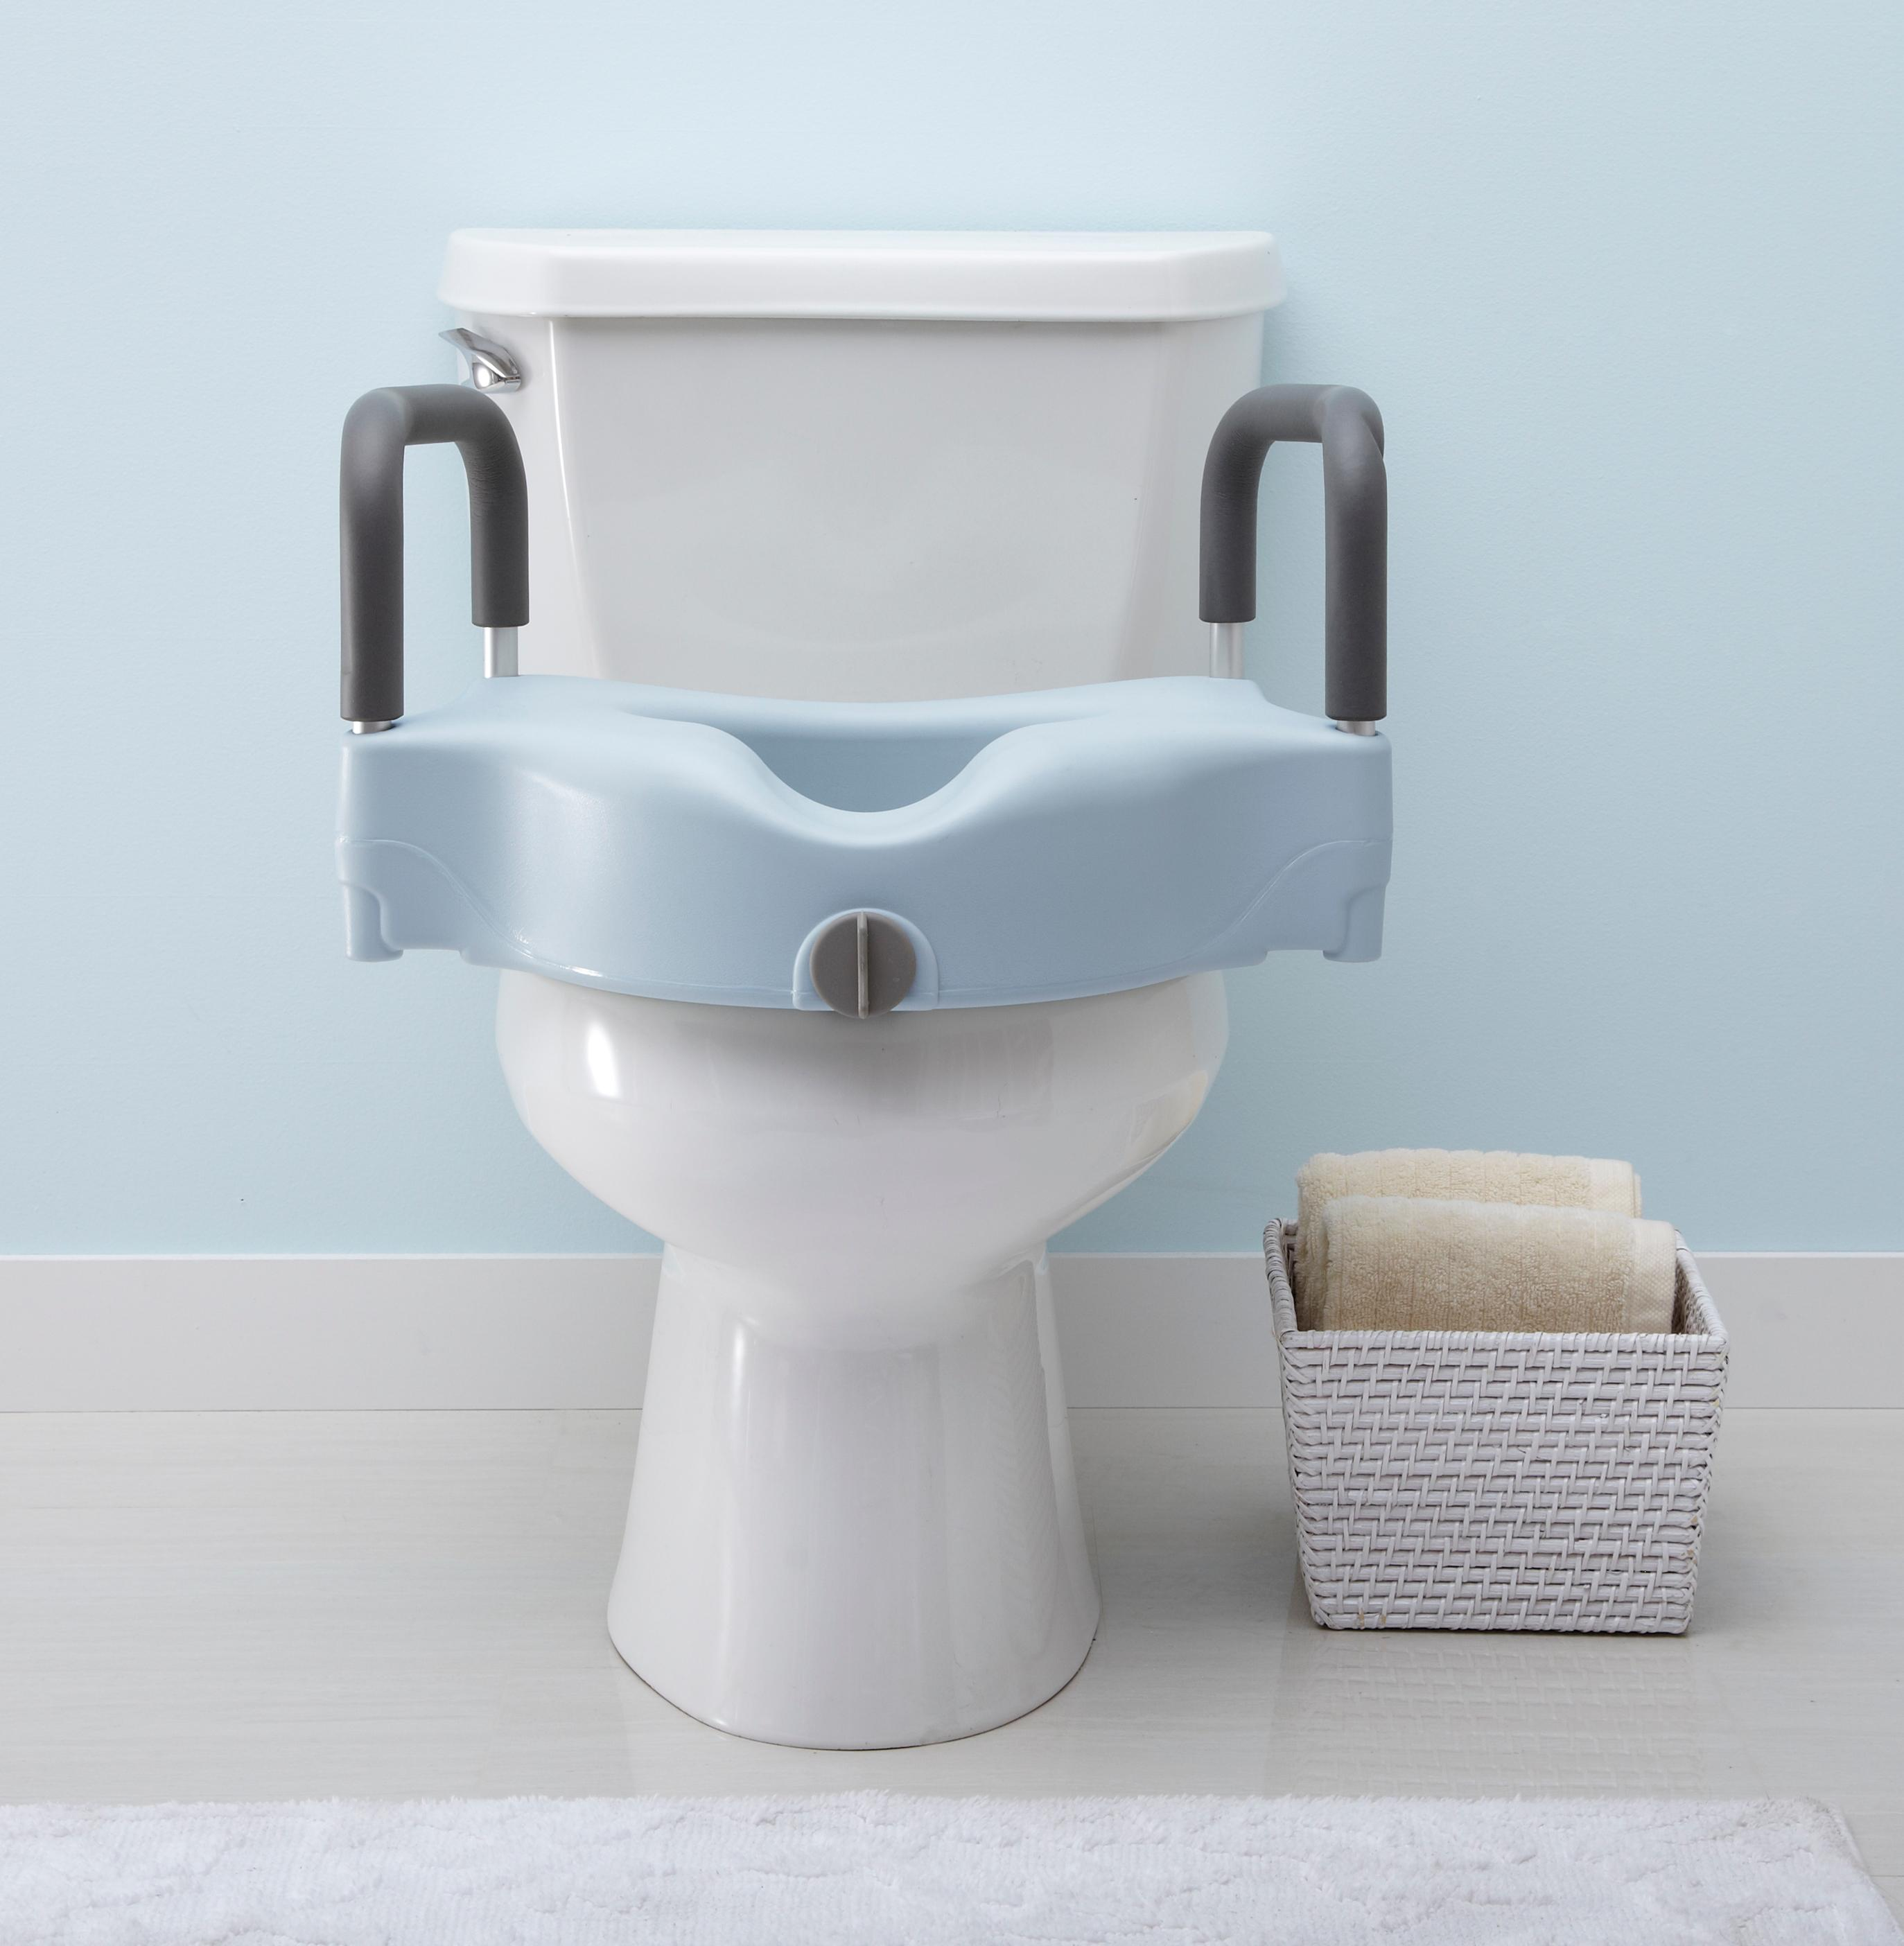 Amazon.com: Medline Locking Elevated Toilet Seat with Arms, Infused ...